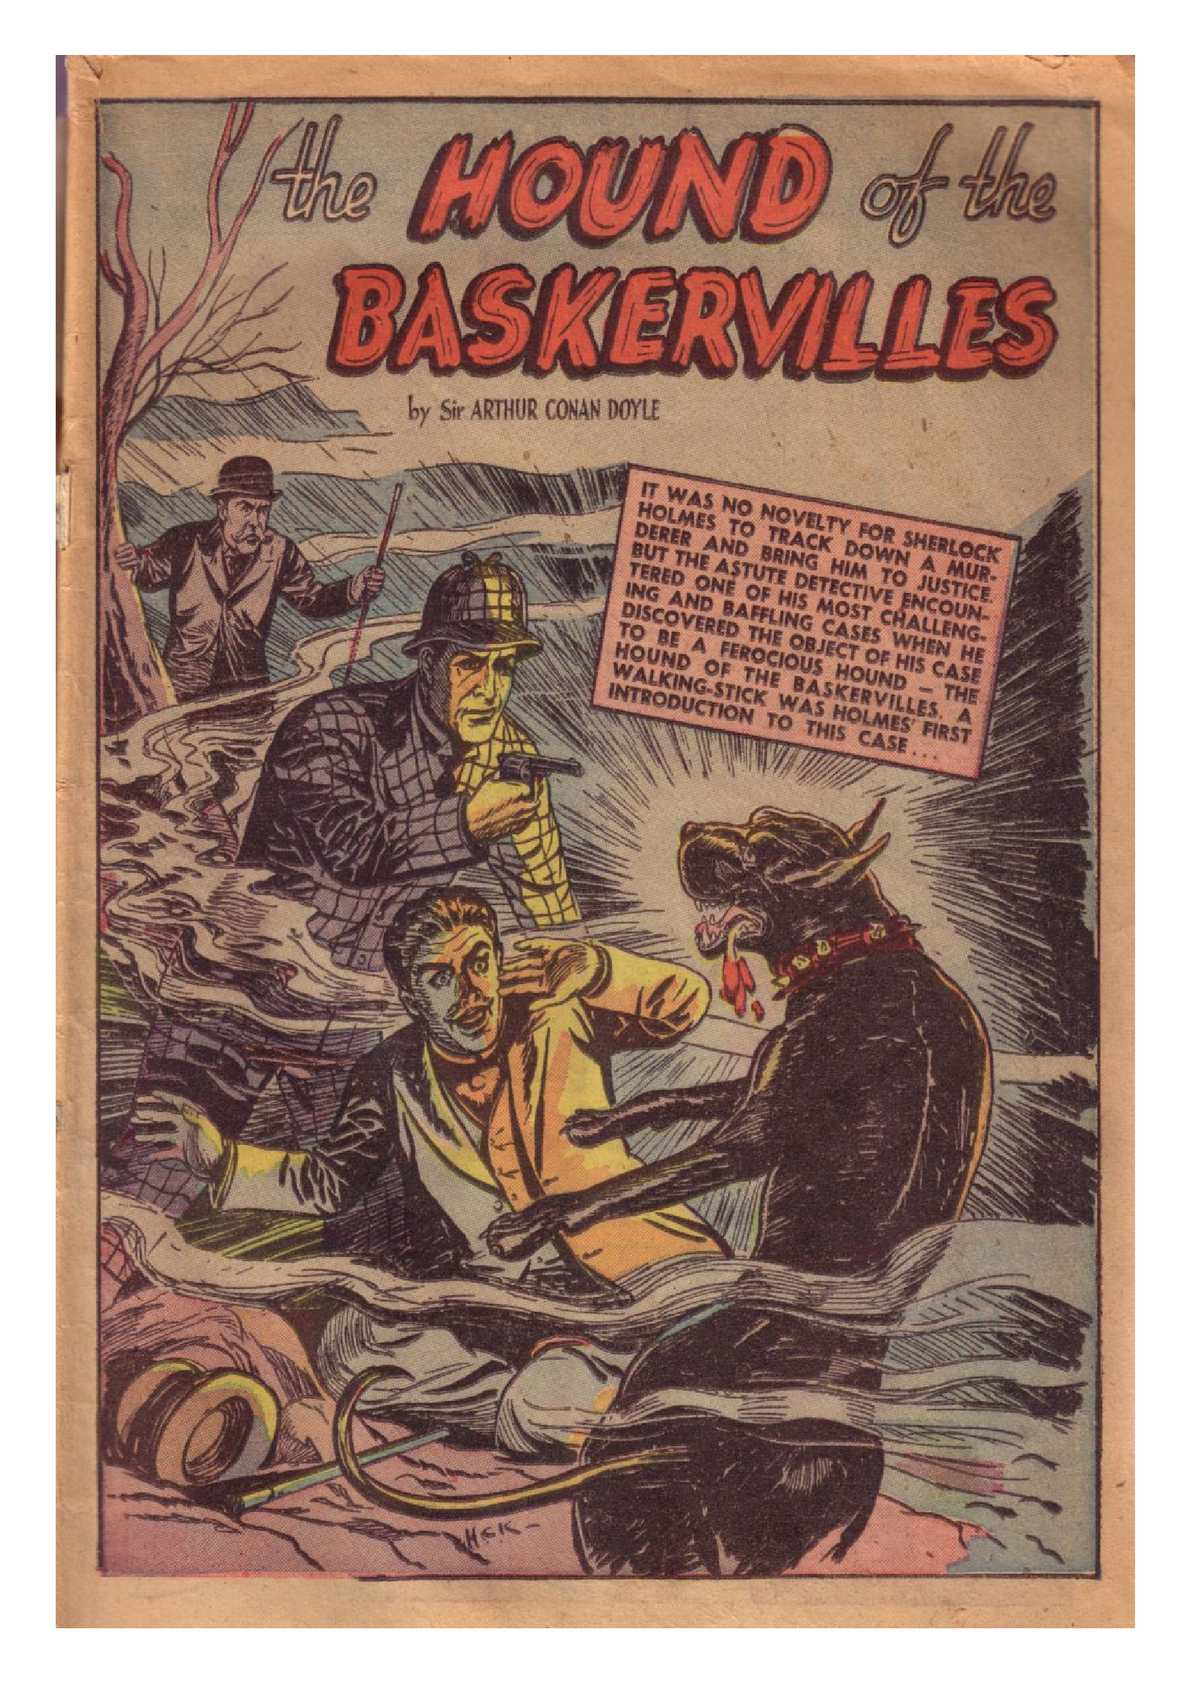 hound of the baskervilles essay Start studying hound of the baskervilles essay questions learn vocabulary, terms, and more with flashcards, games, and other study tools.